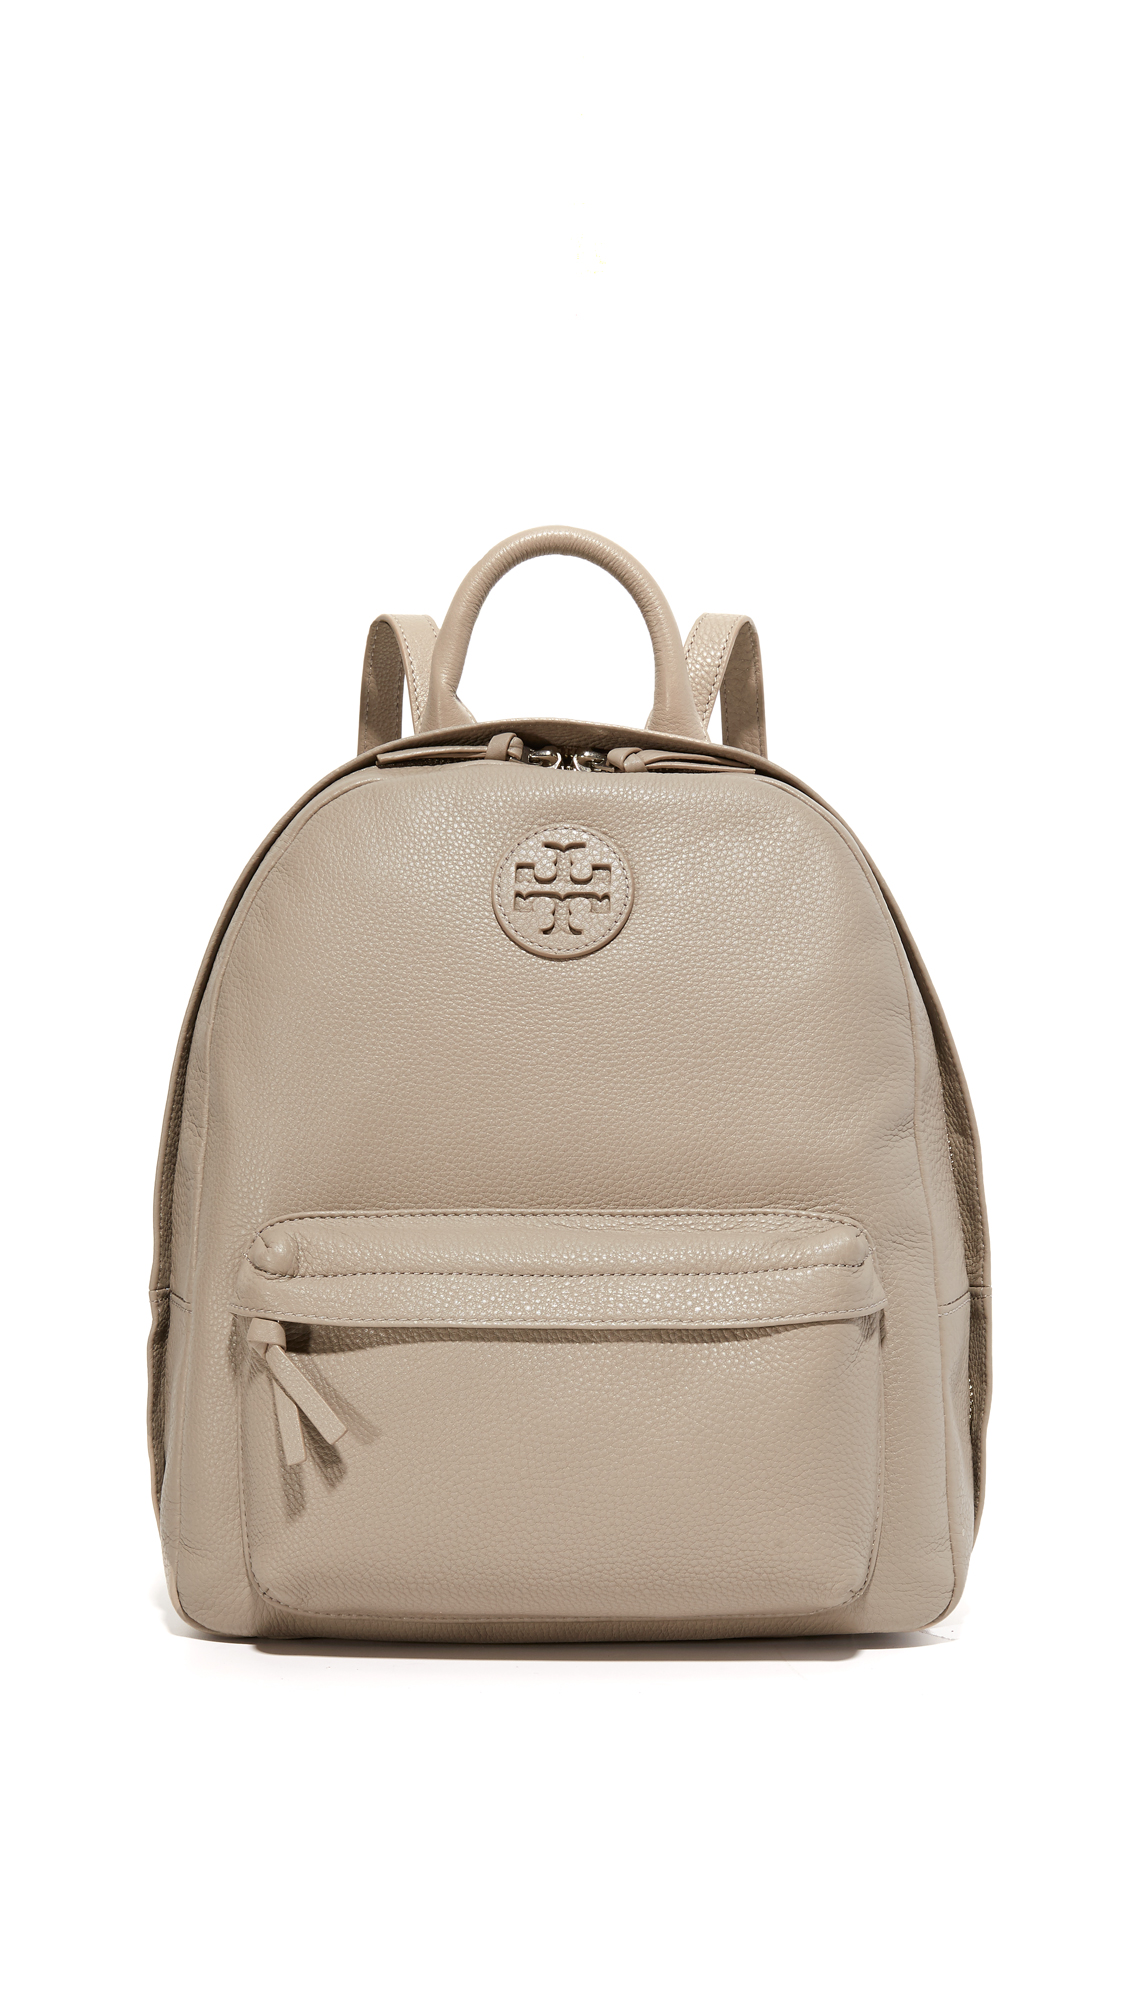 tory burch female tory burch leather backpack french gray